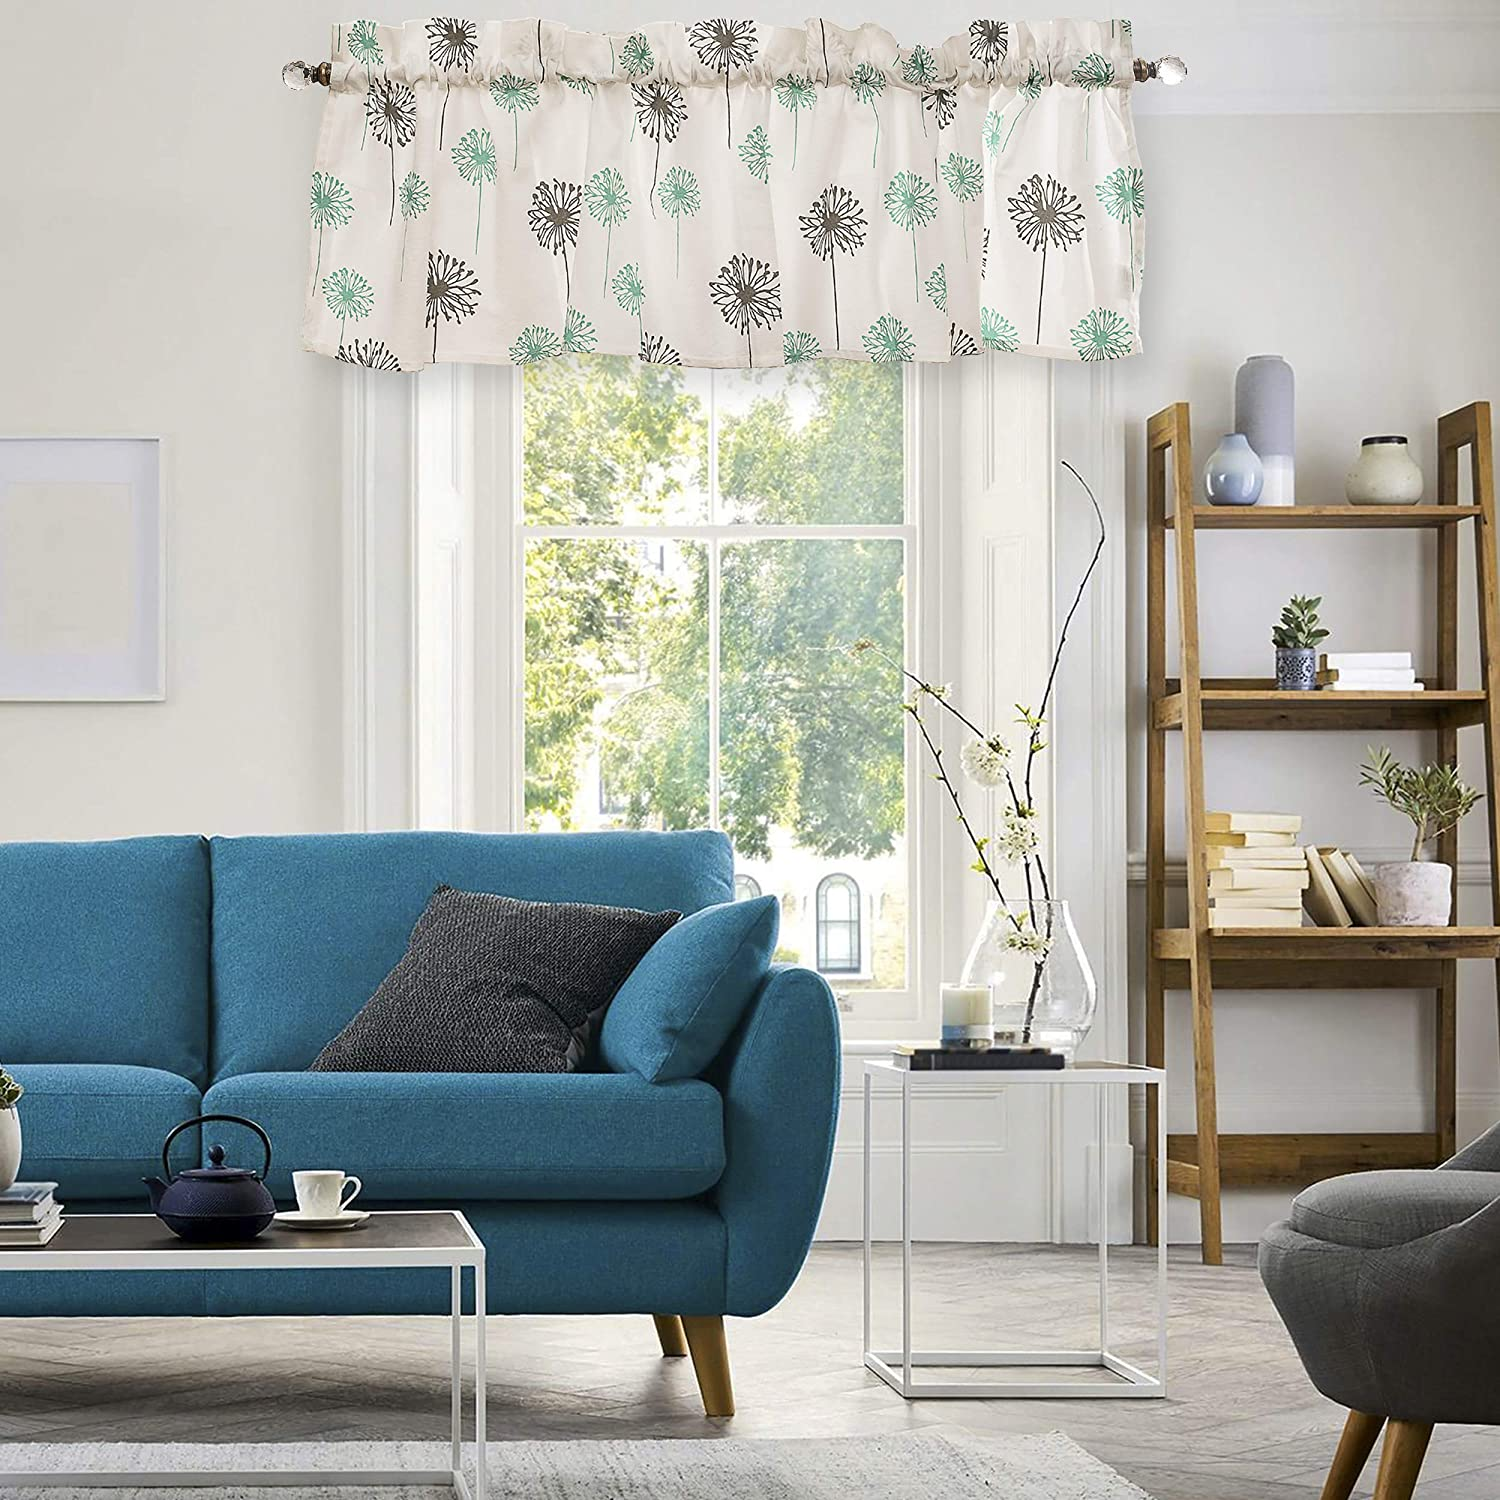 Crabtree Collection Gray Dandelion Curtain Valances for Windows (16x60)